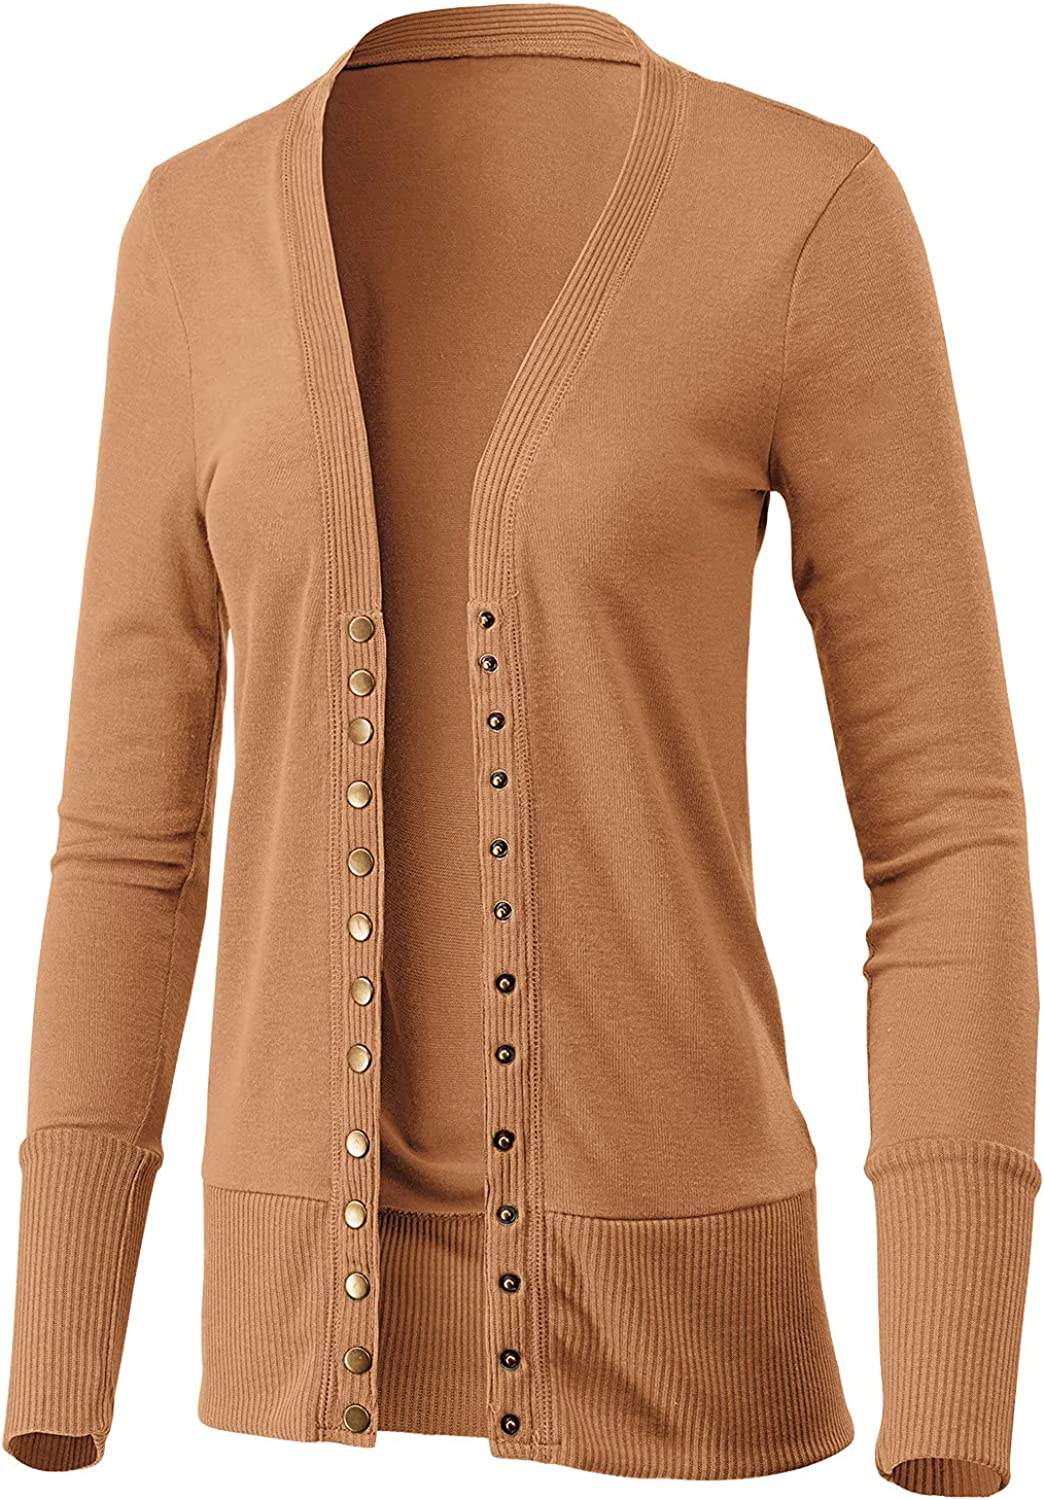 Women's Long Sleeve Snap Button Down Solid Color Knit Ribbed Neckline Casual Cardigan Sweater